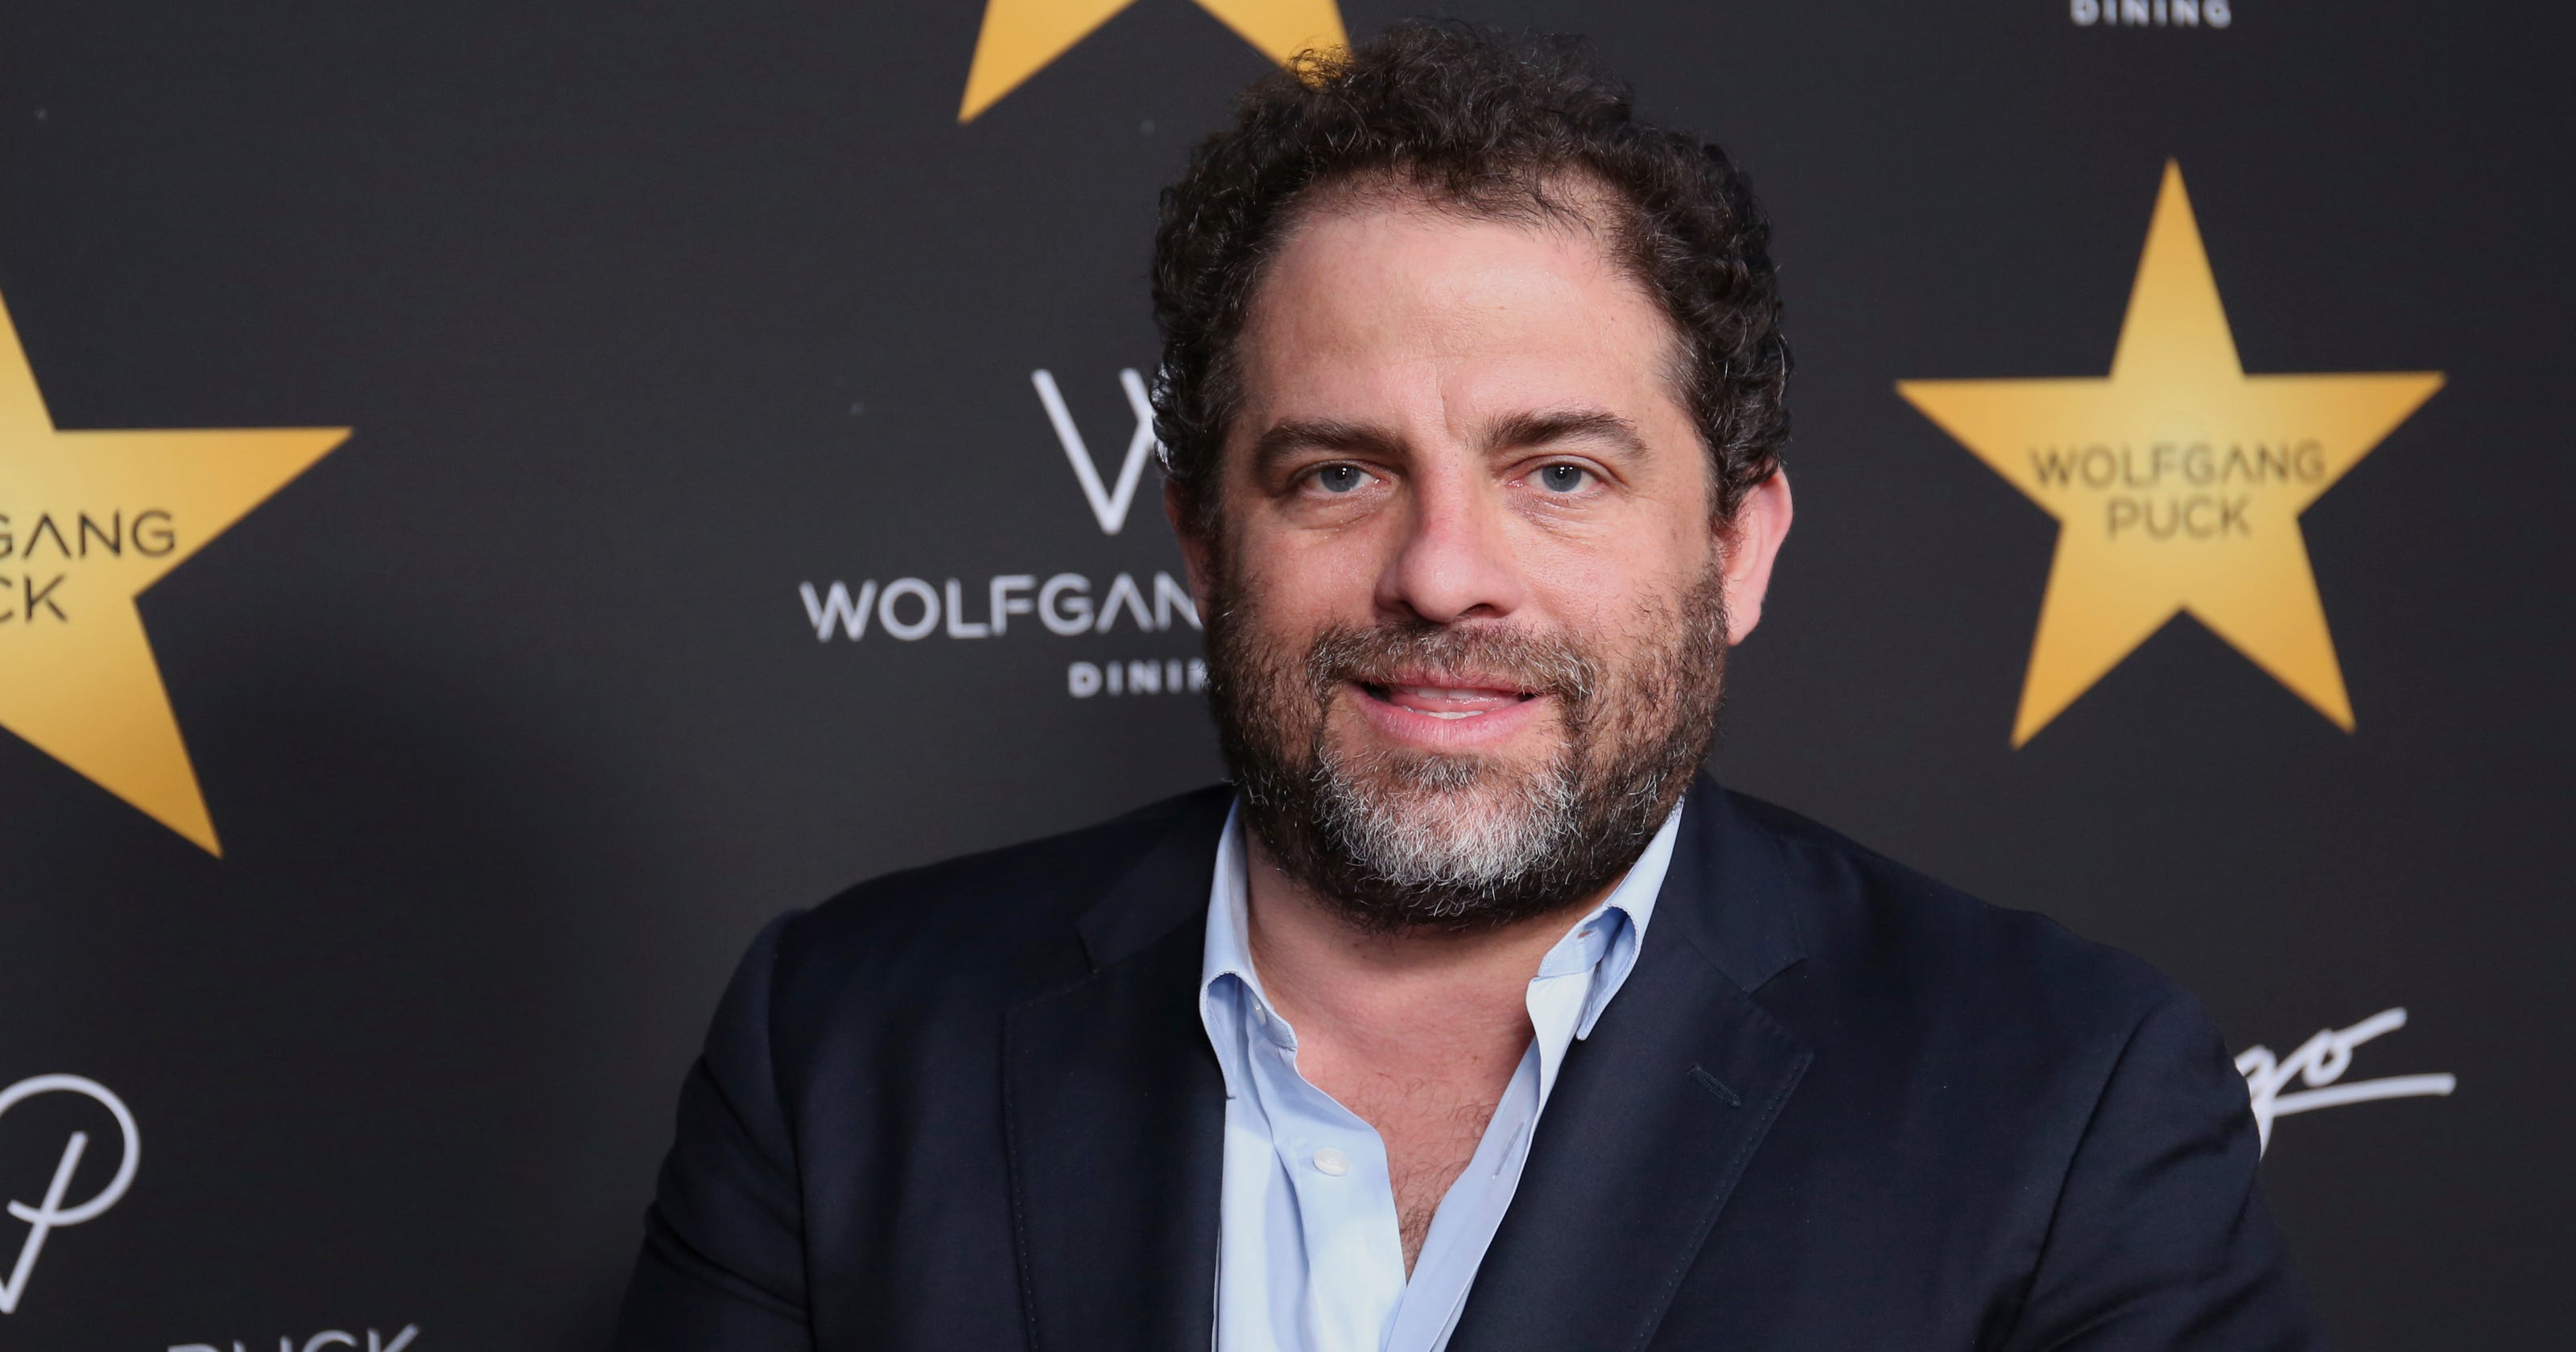 Time's Up condemns return of Brett Ratner after sexual misconduct allegations: 'There should be no comeback' - USA TODAY